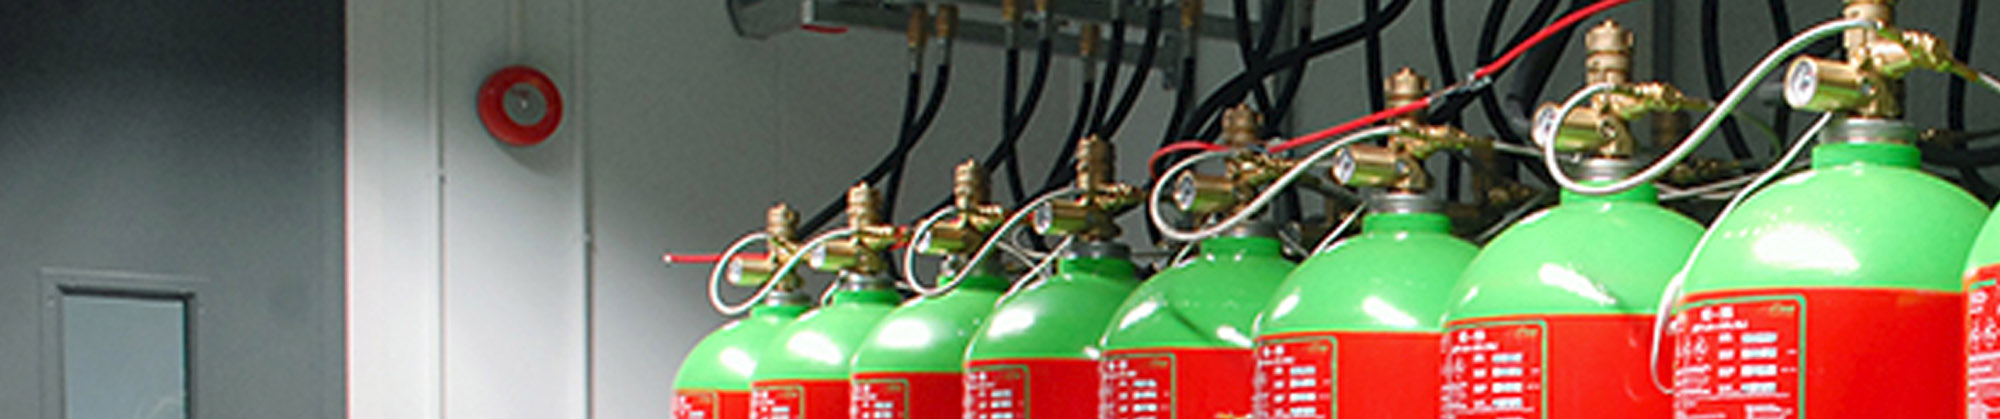 Fire Suppression Bristol